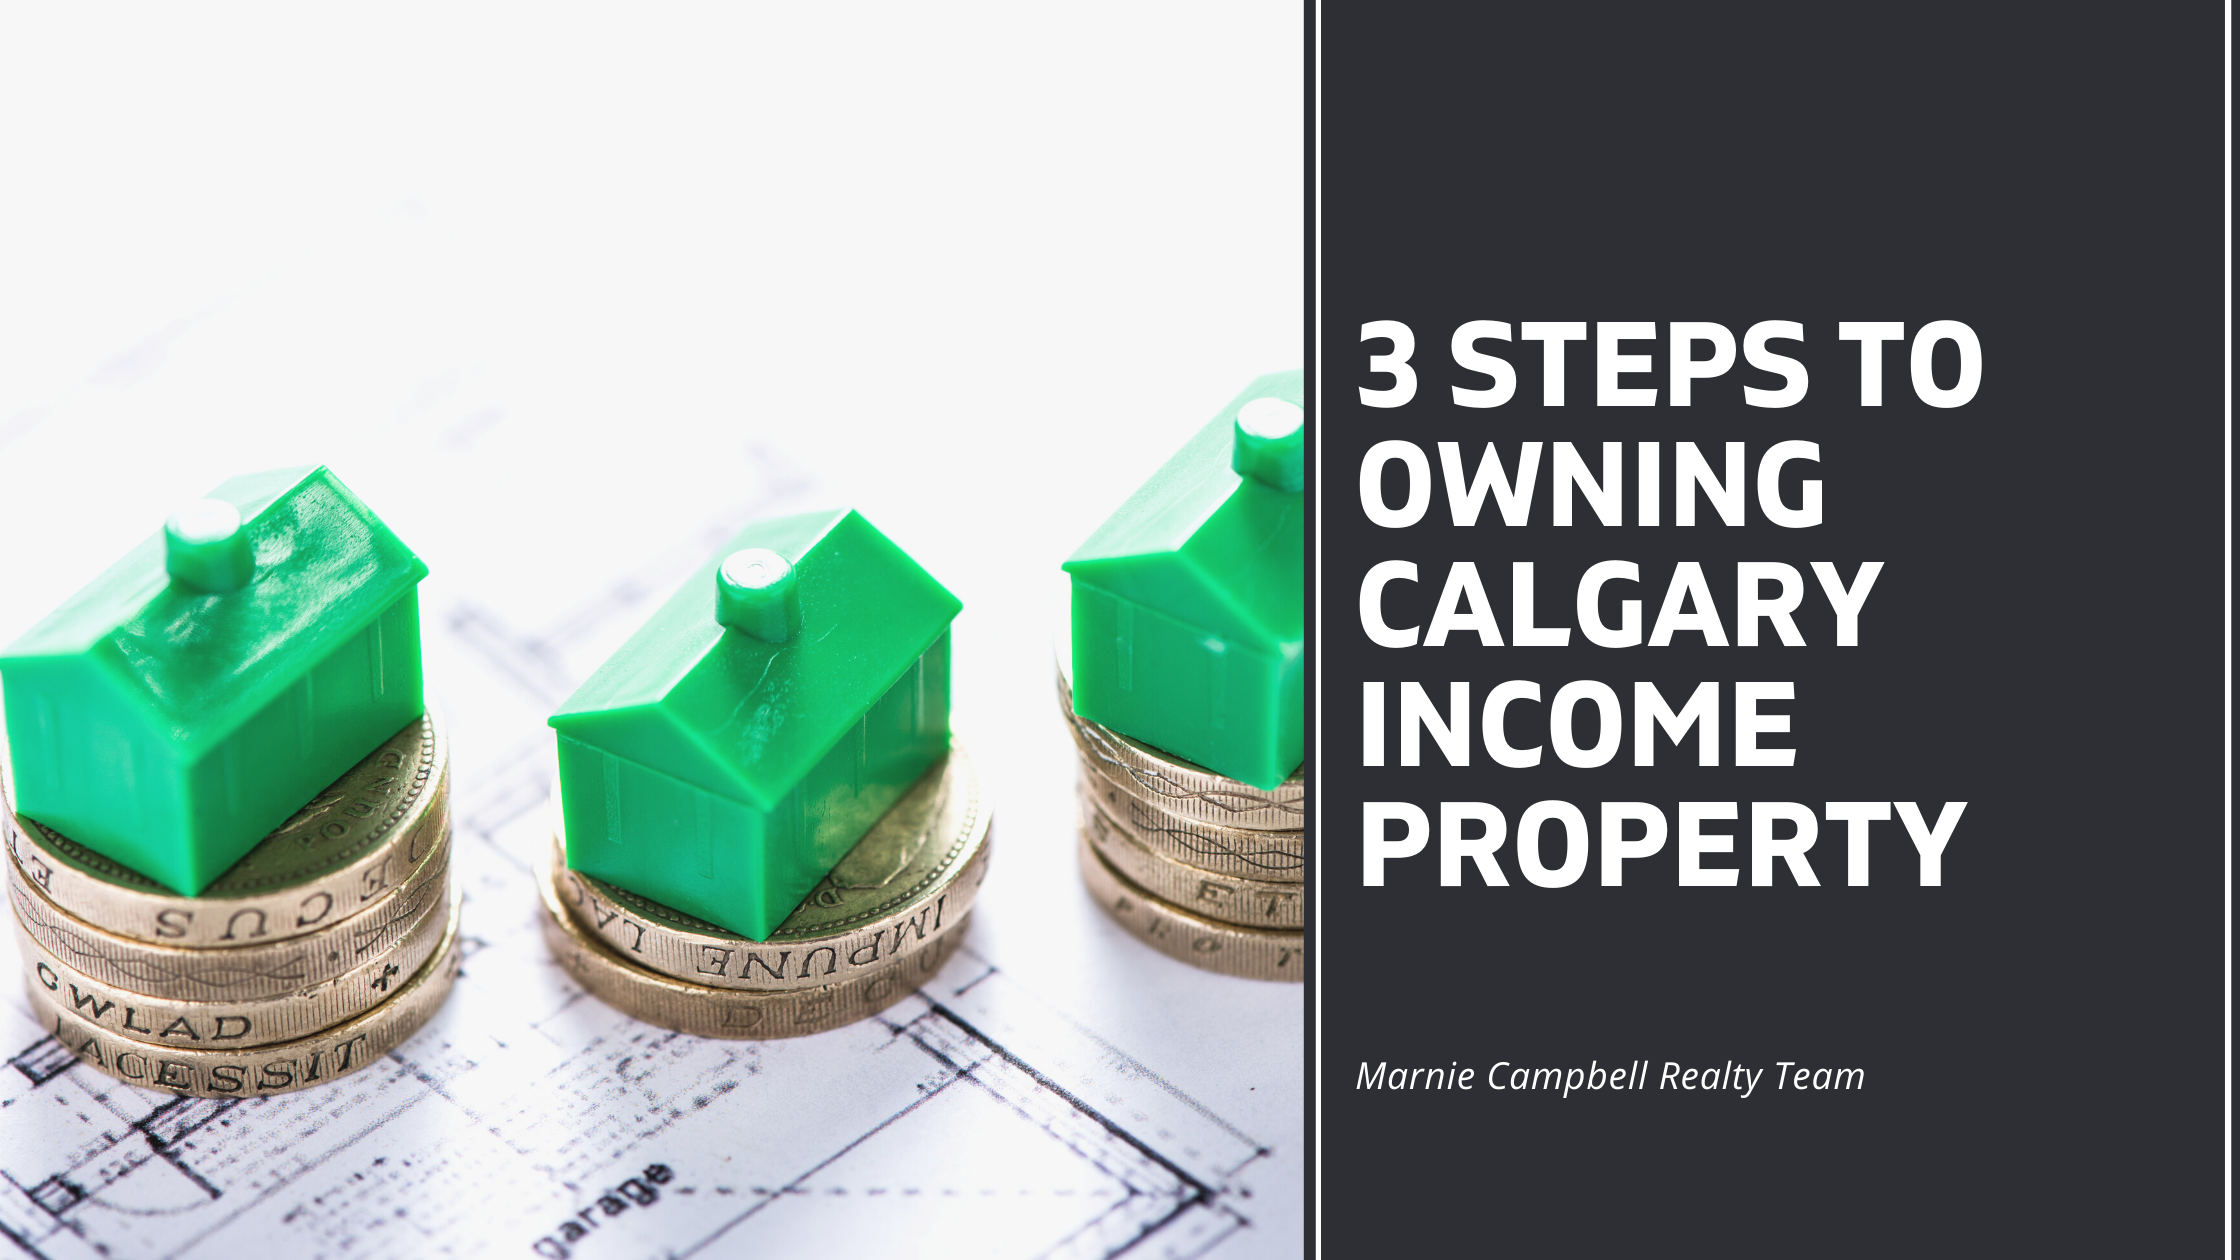 3 Steps to Owning Calgary Income Property